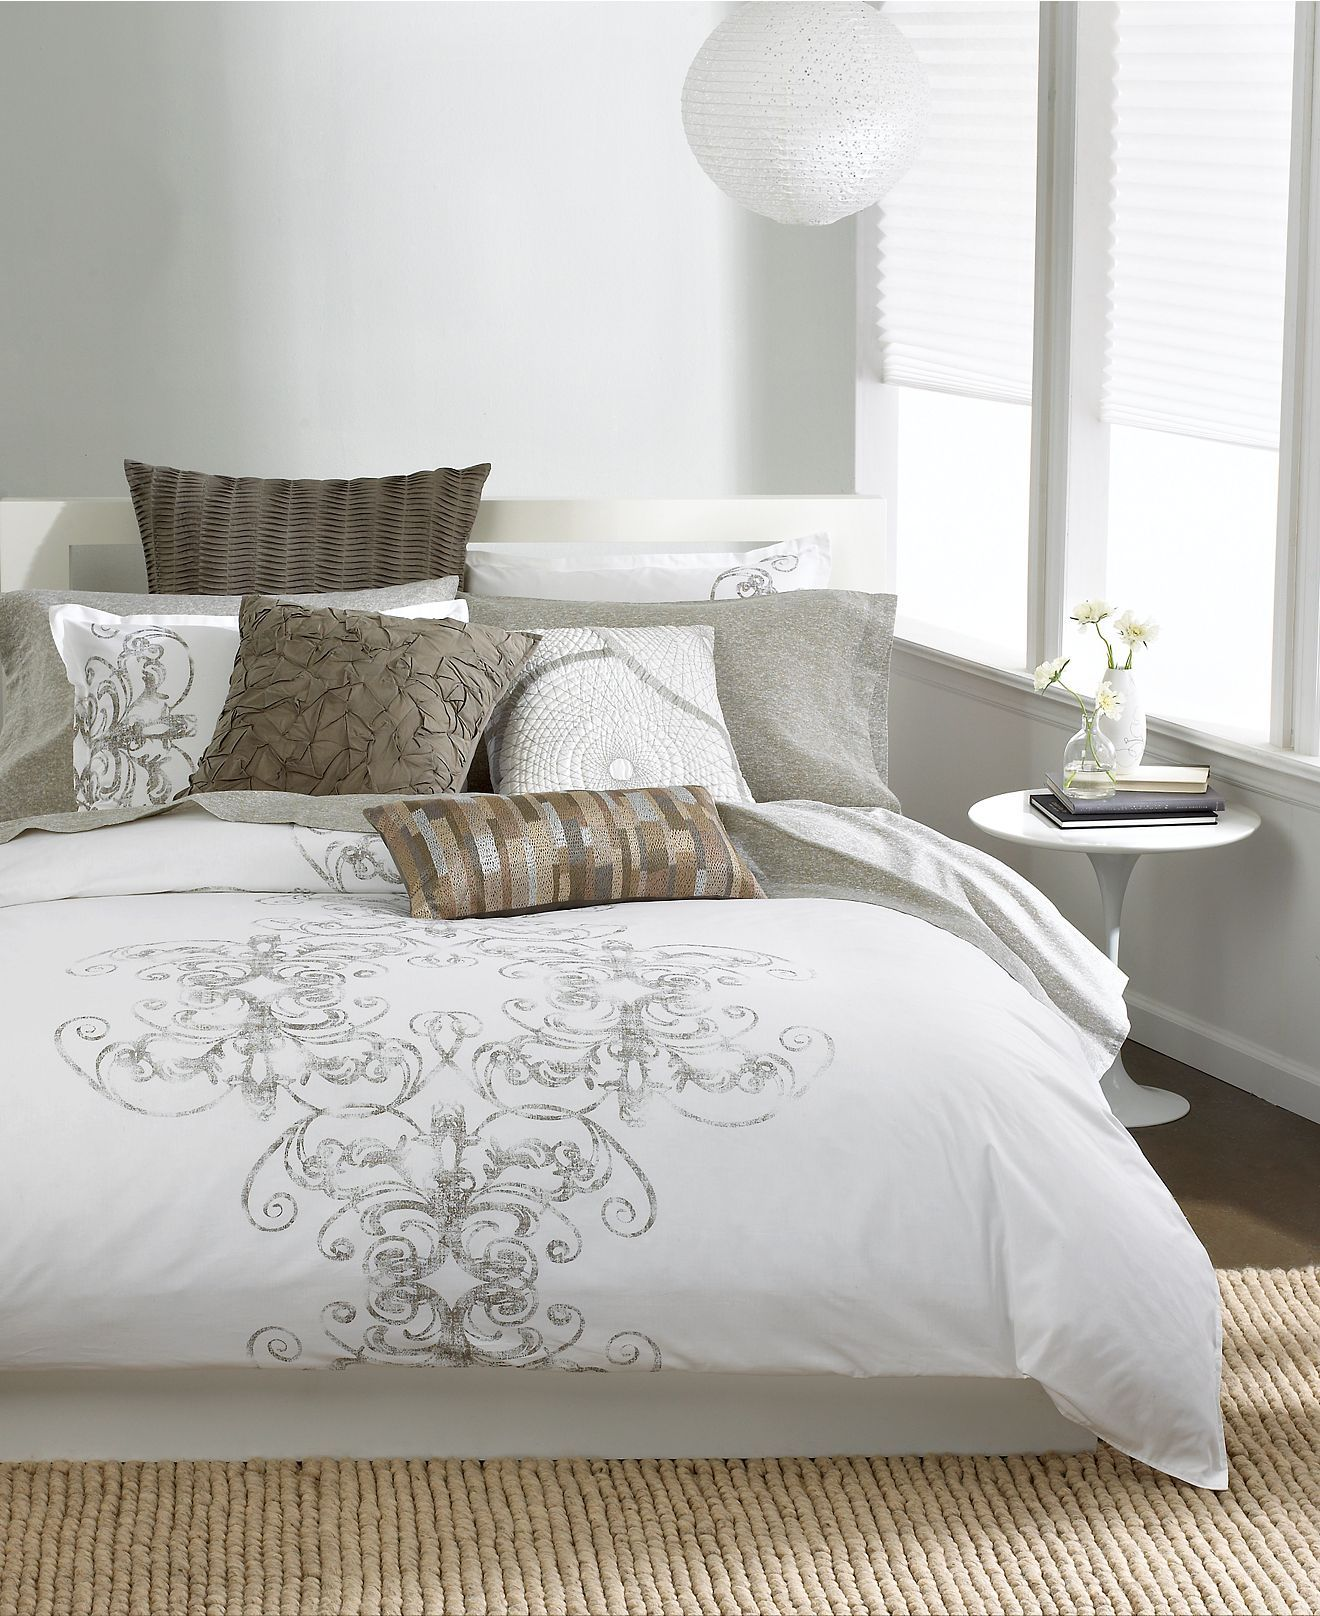 Bed set macys if this were purple it would be perf decoraci n pinterest decoraci n - Pinterest decoracion hogar ...